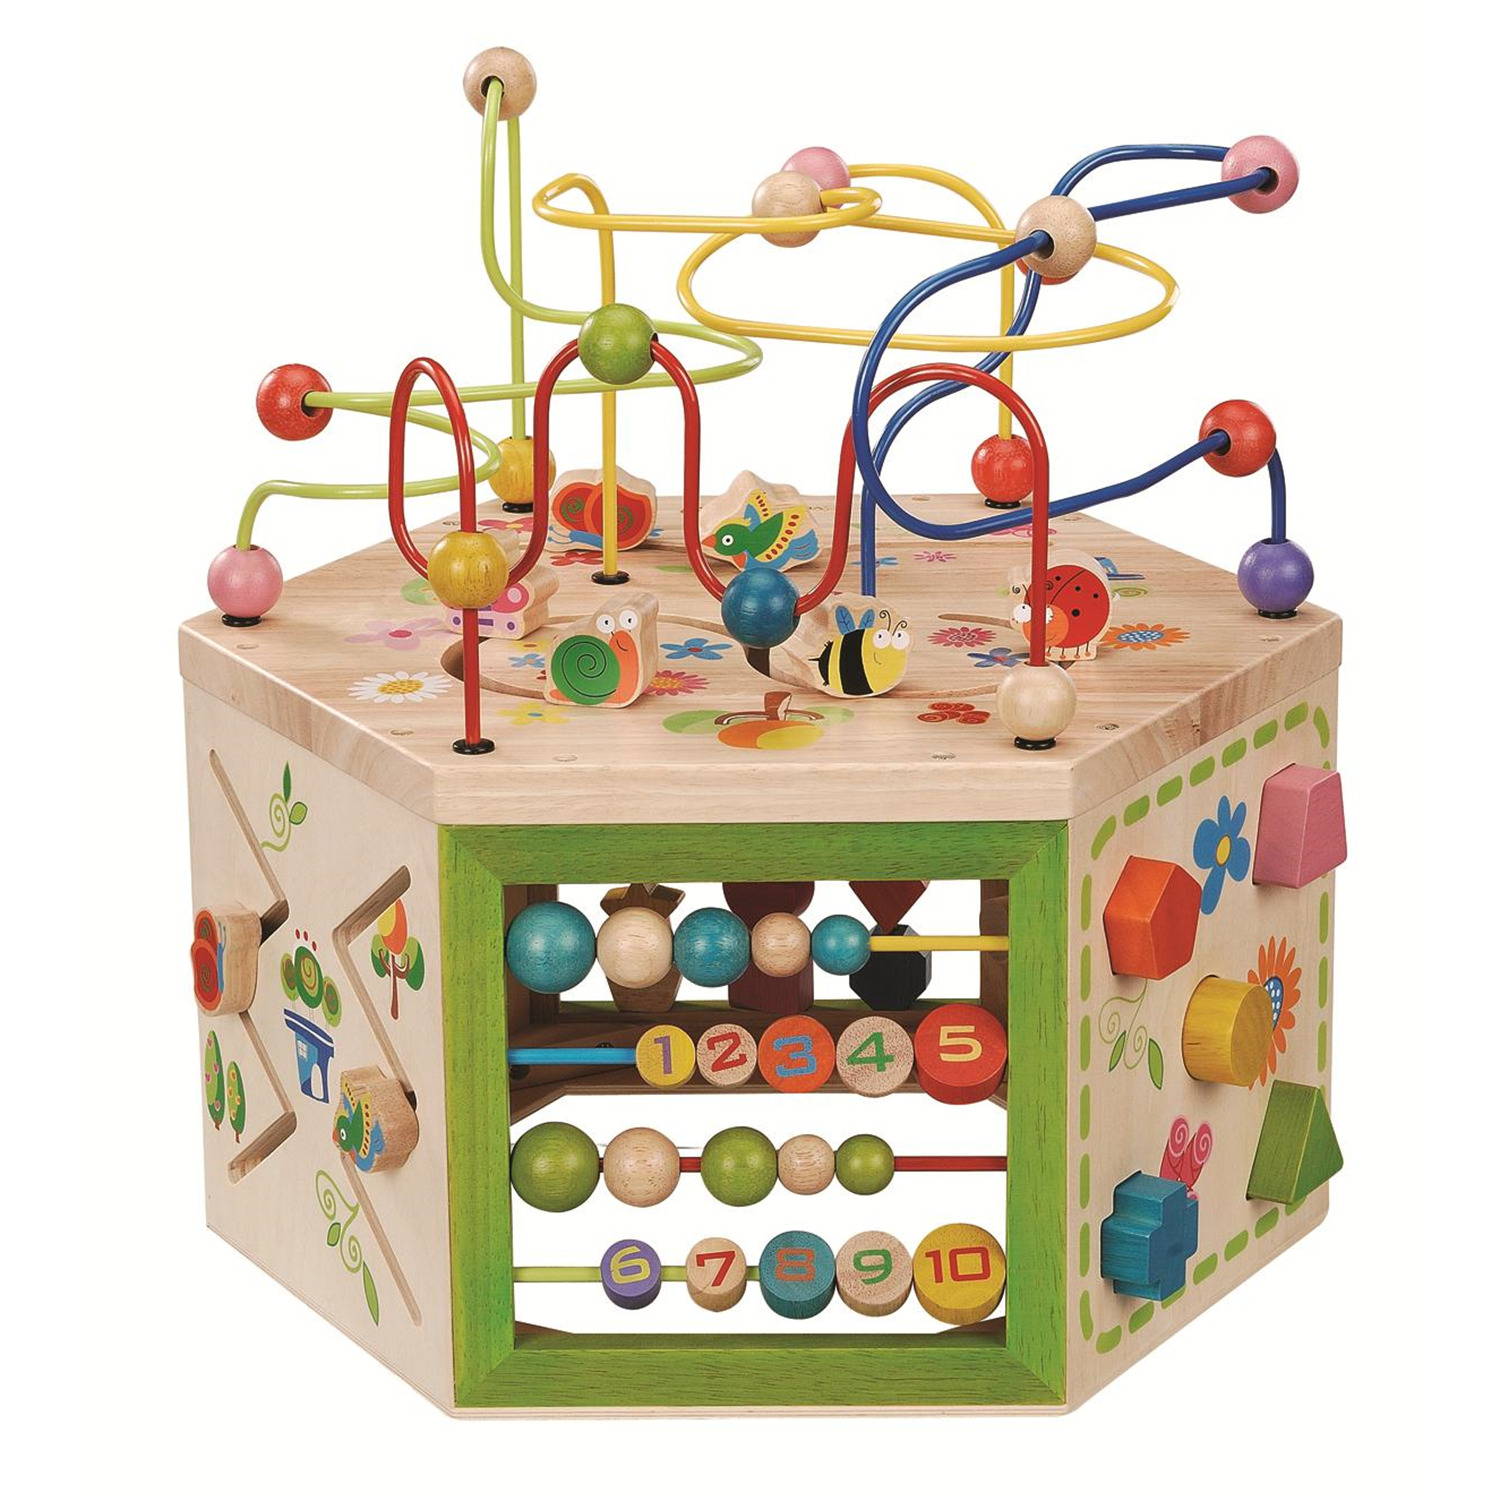 Maxim Enterprise Everearth Garden Activity Cube By Oj Commerce 33285